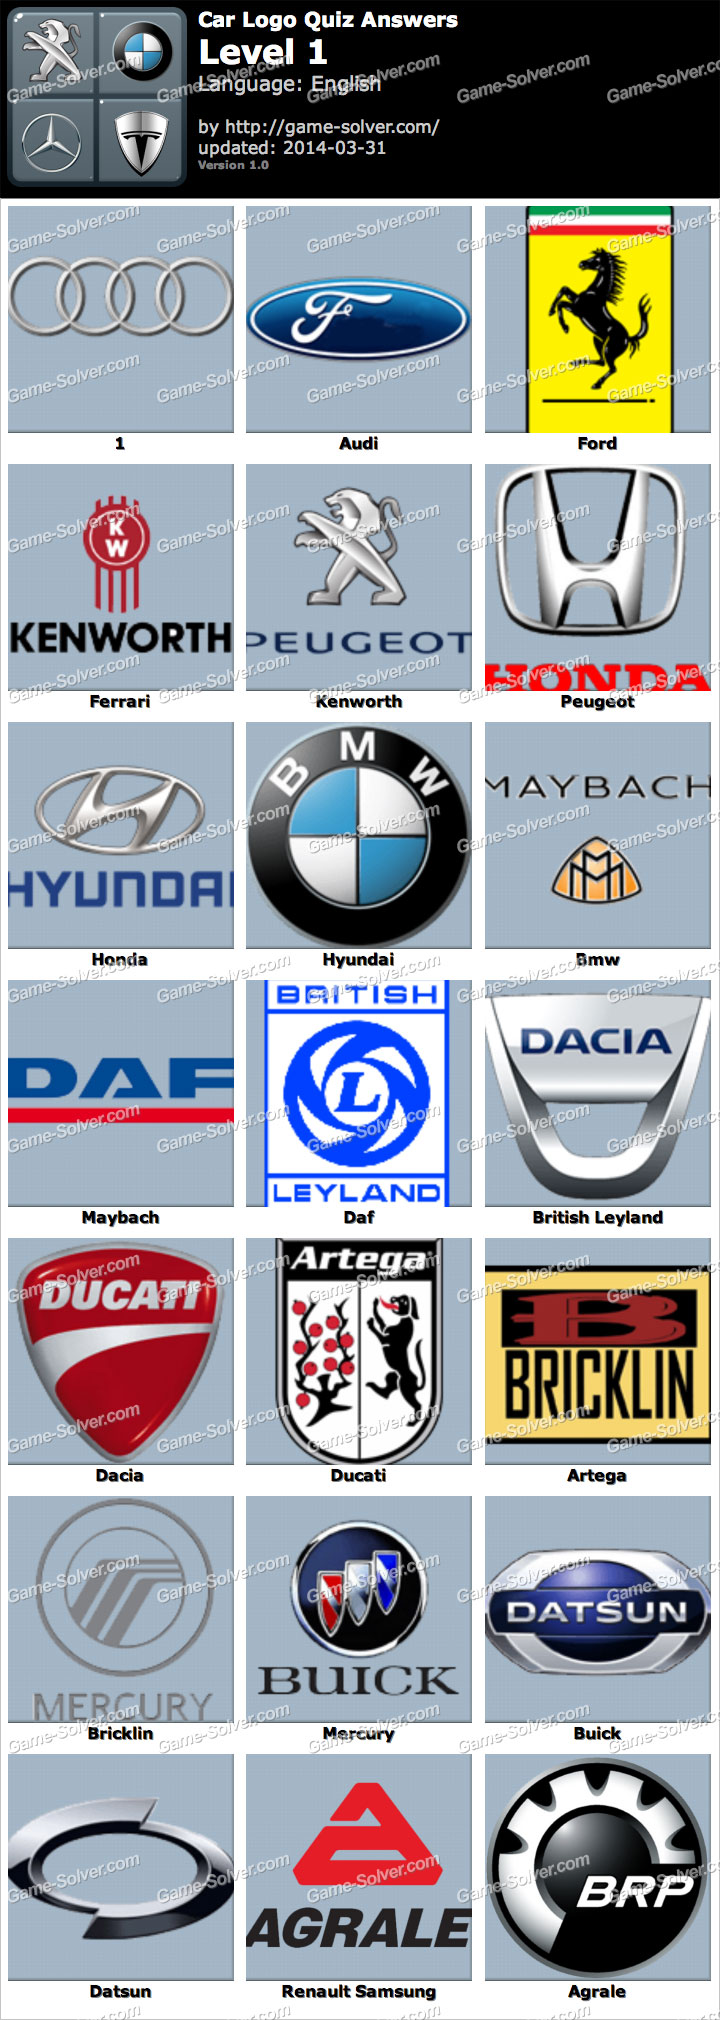 Car Logo Quiz Answers - Game Solver